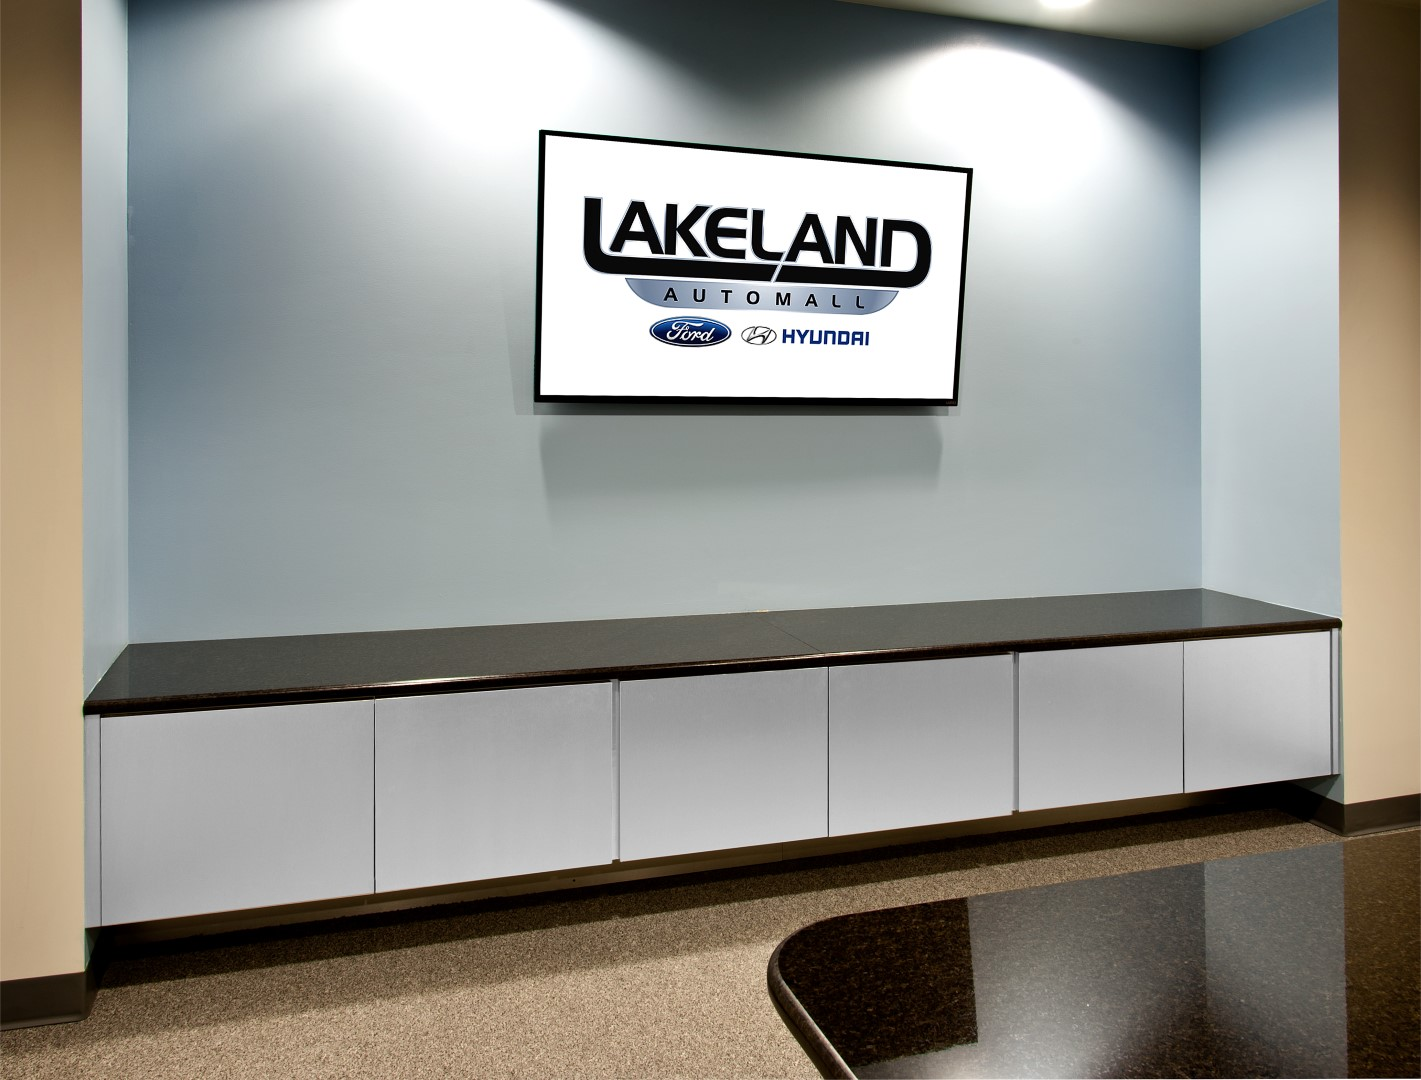 lakeland blog customer service wins expectations region every exceeding auto southern hyundai satisfaction award day